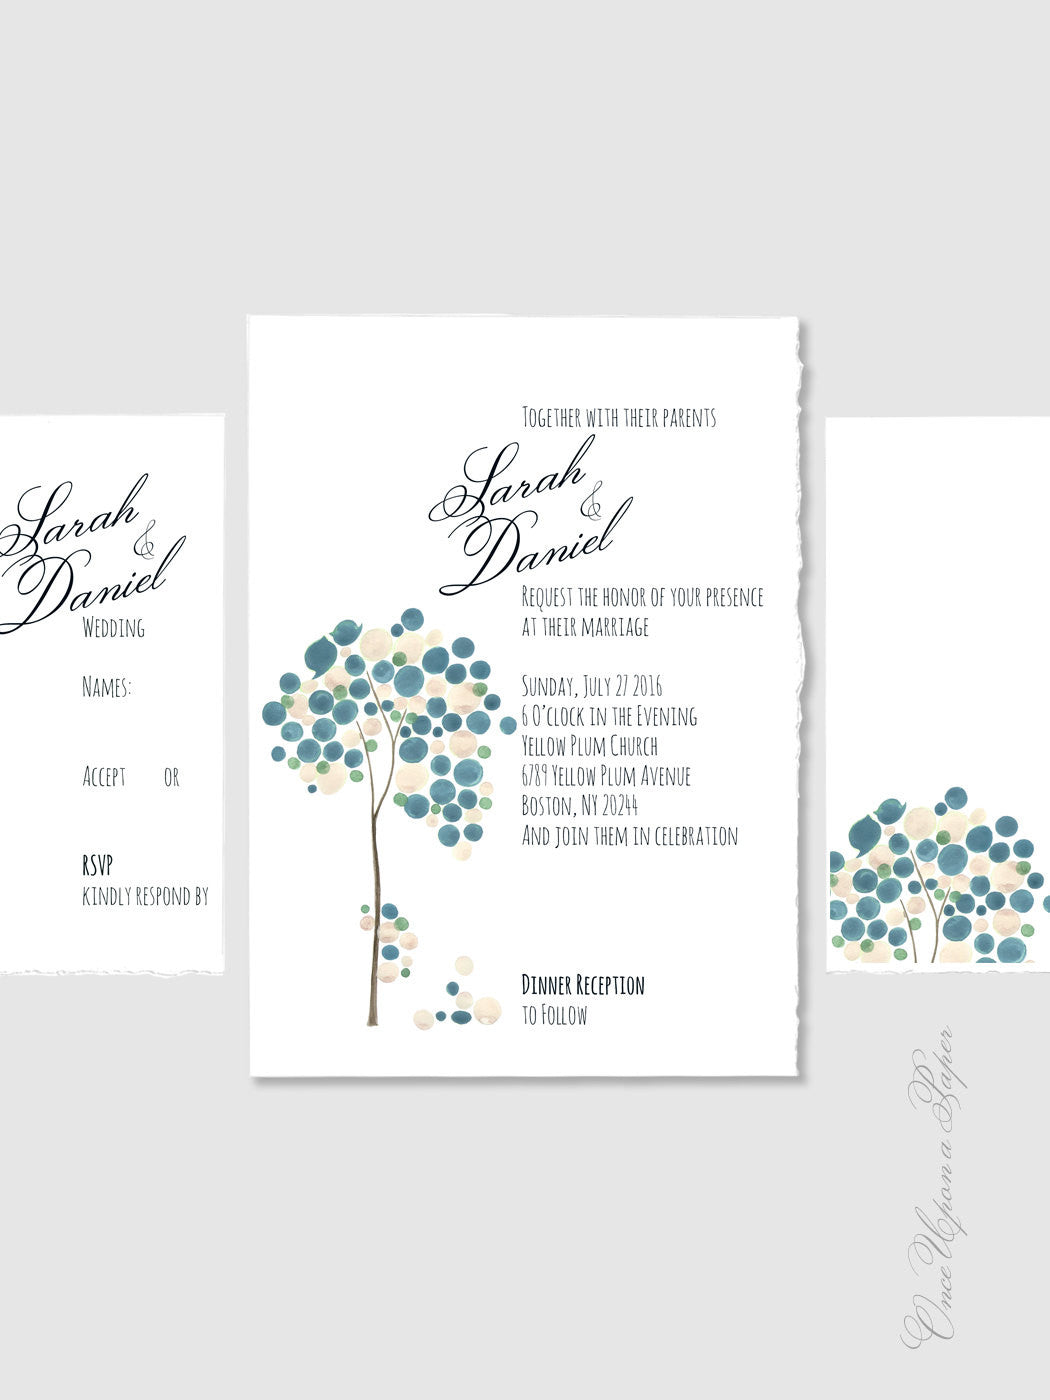 Custom Wedding Suite Package Printable - Save the Date, Wedding Invitations, RSVP, Thank You Cards